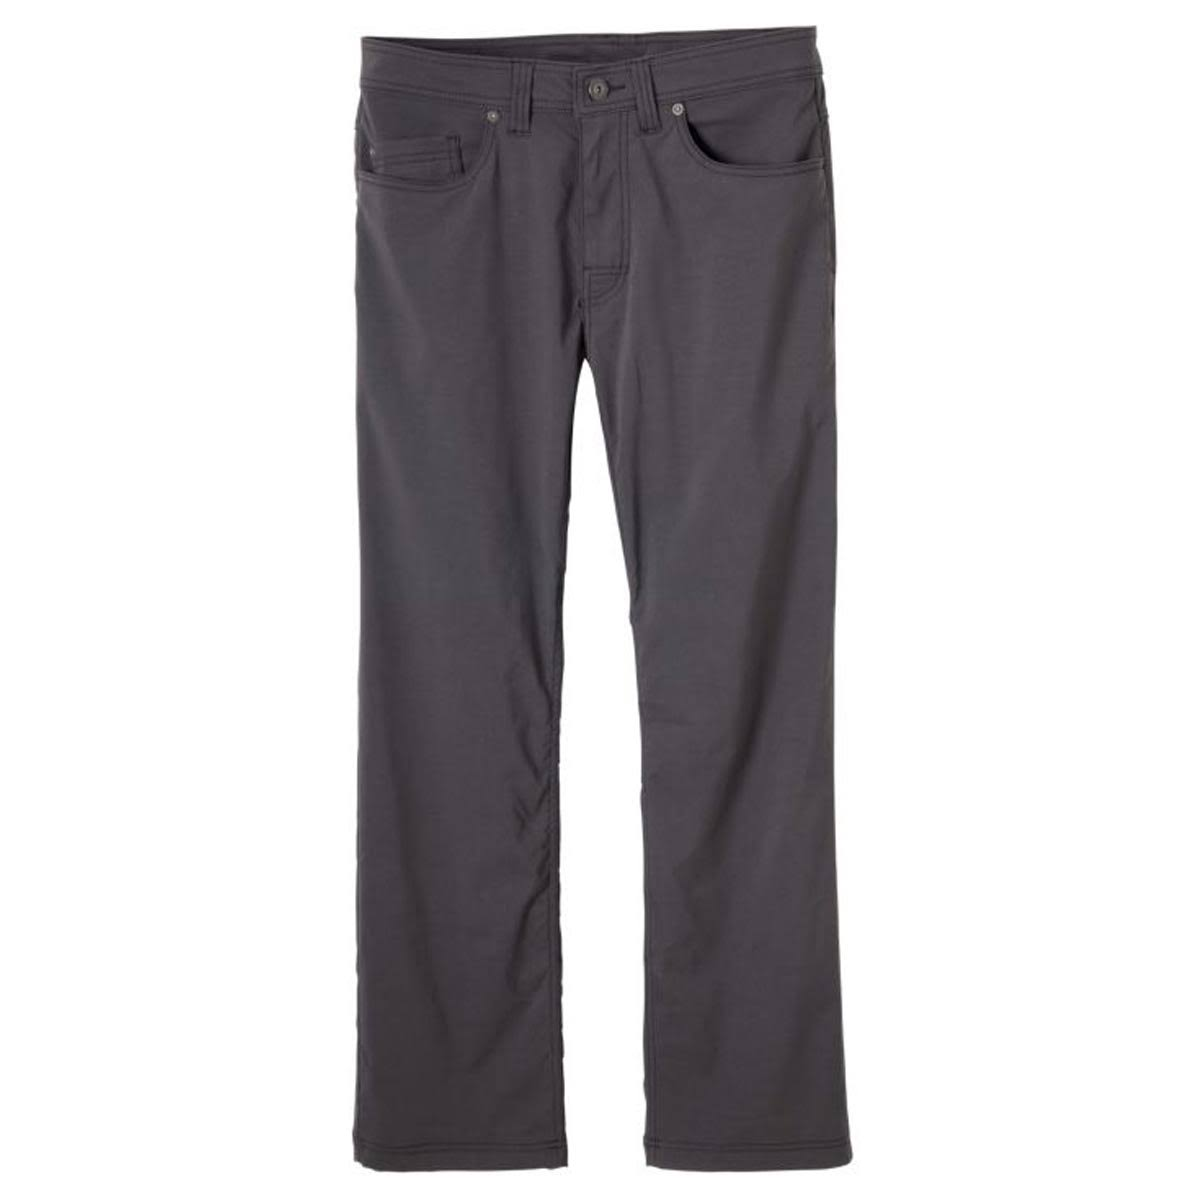 prAna Mens Brion Pants - Charcoal, 32""